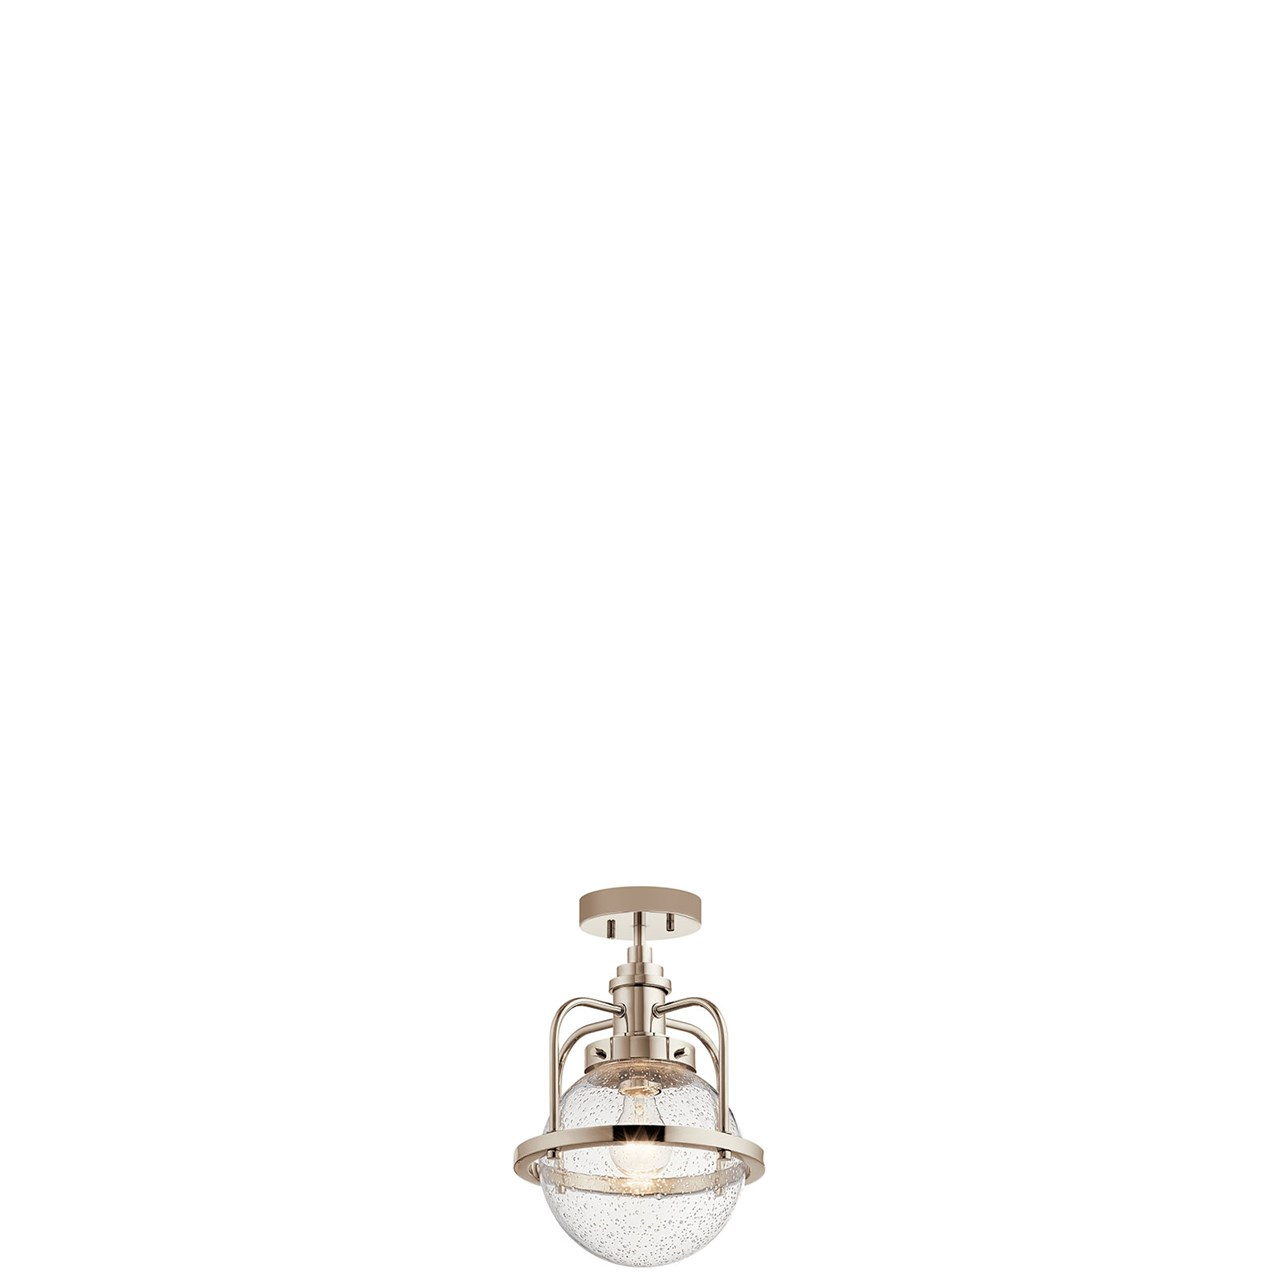 Triocent 1 Light Convertible Pendant Polished Nickel™